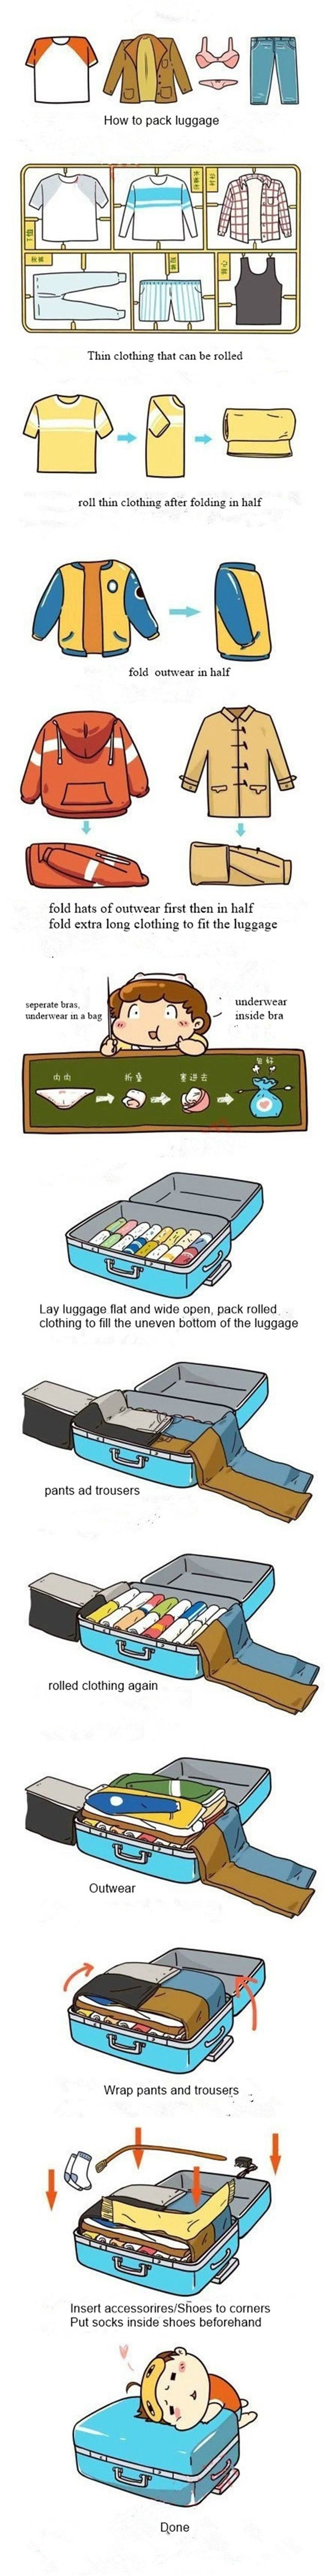 How to Pack Luggages More Efficiently